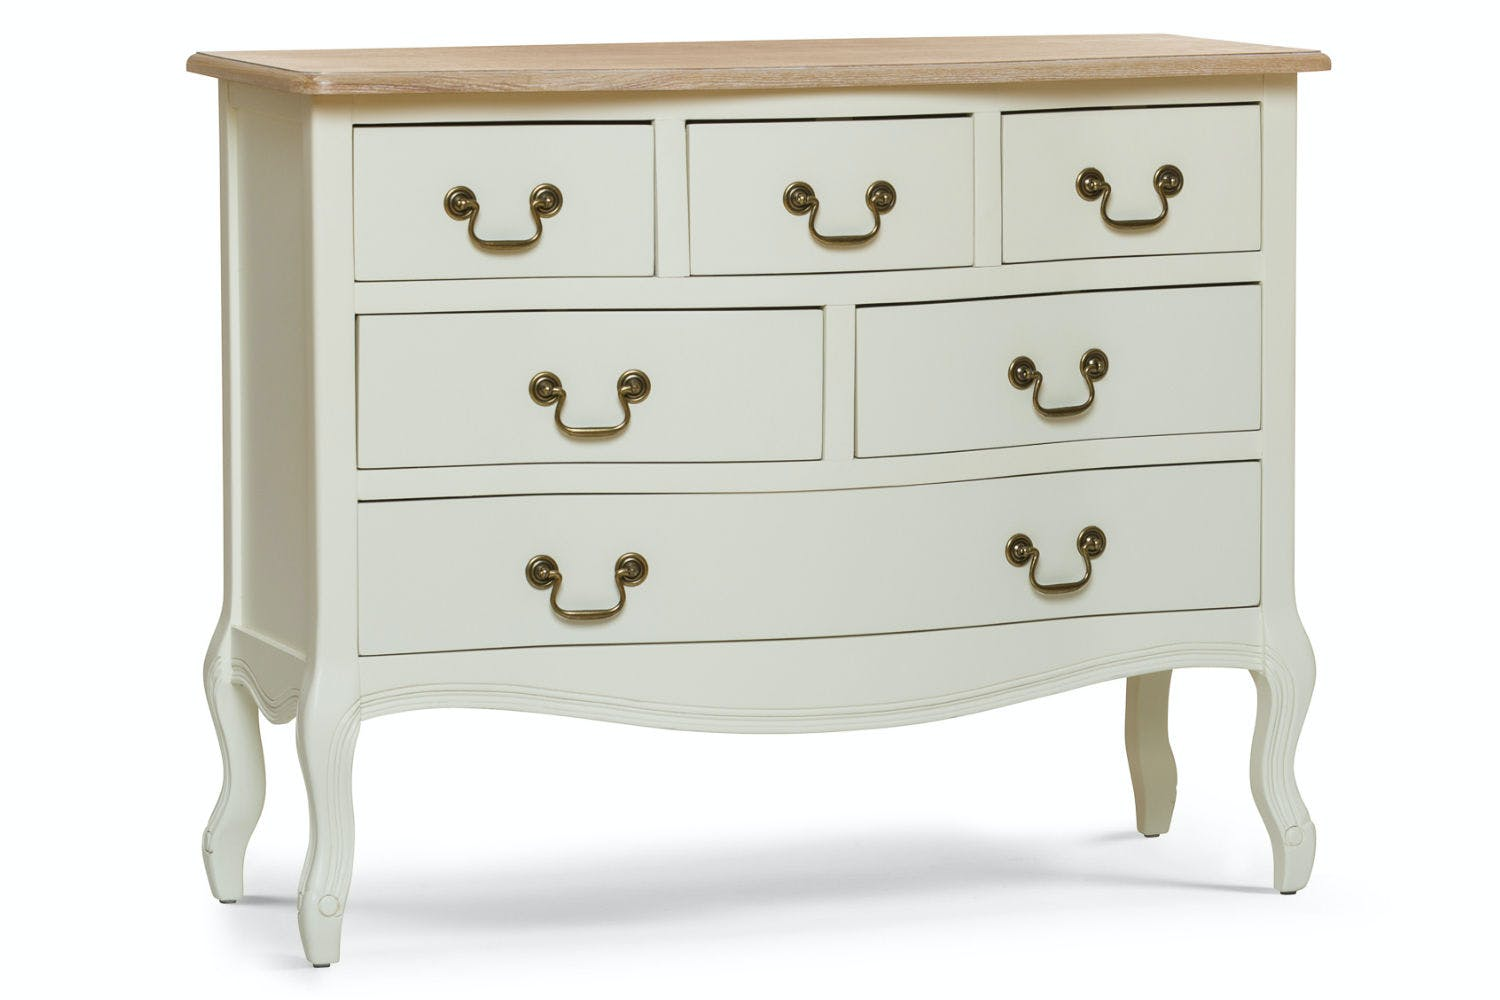 new arrival a7853 554d8 Bouvard 6 Drawer Dresser Chest | Cream